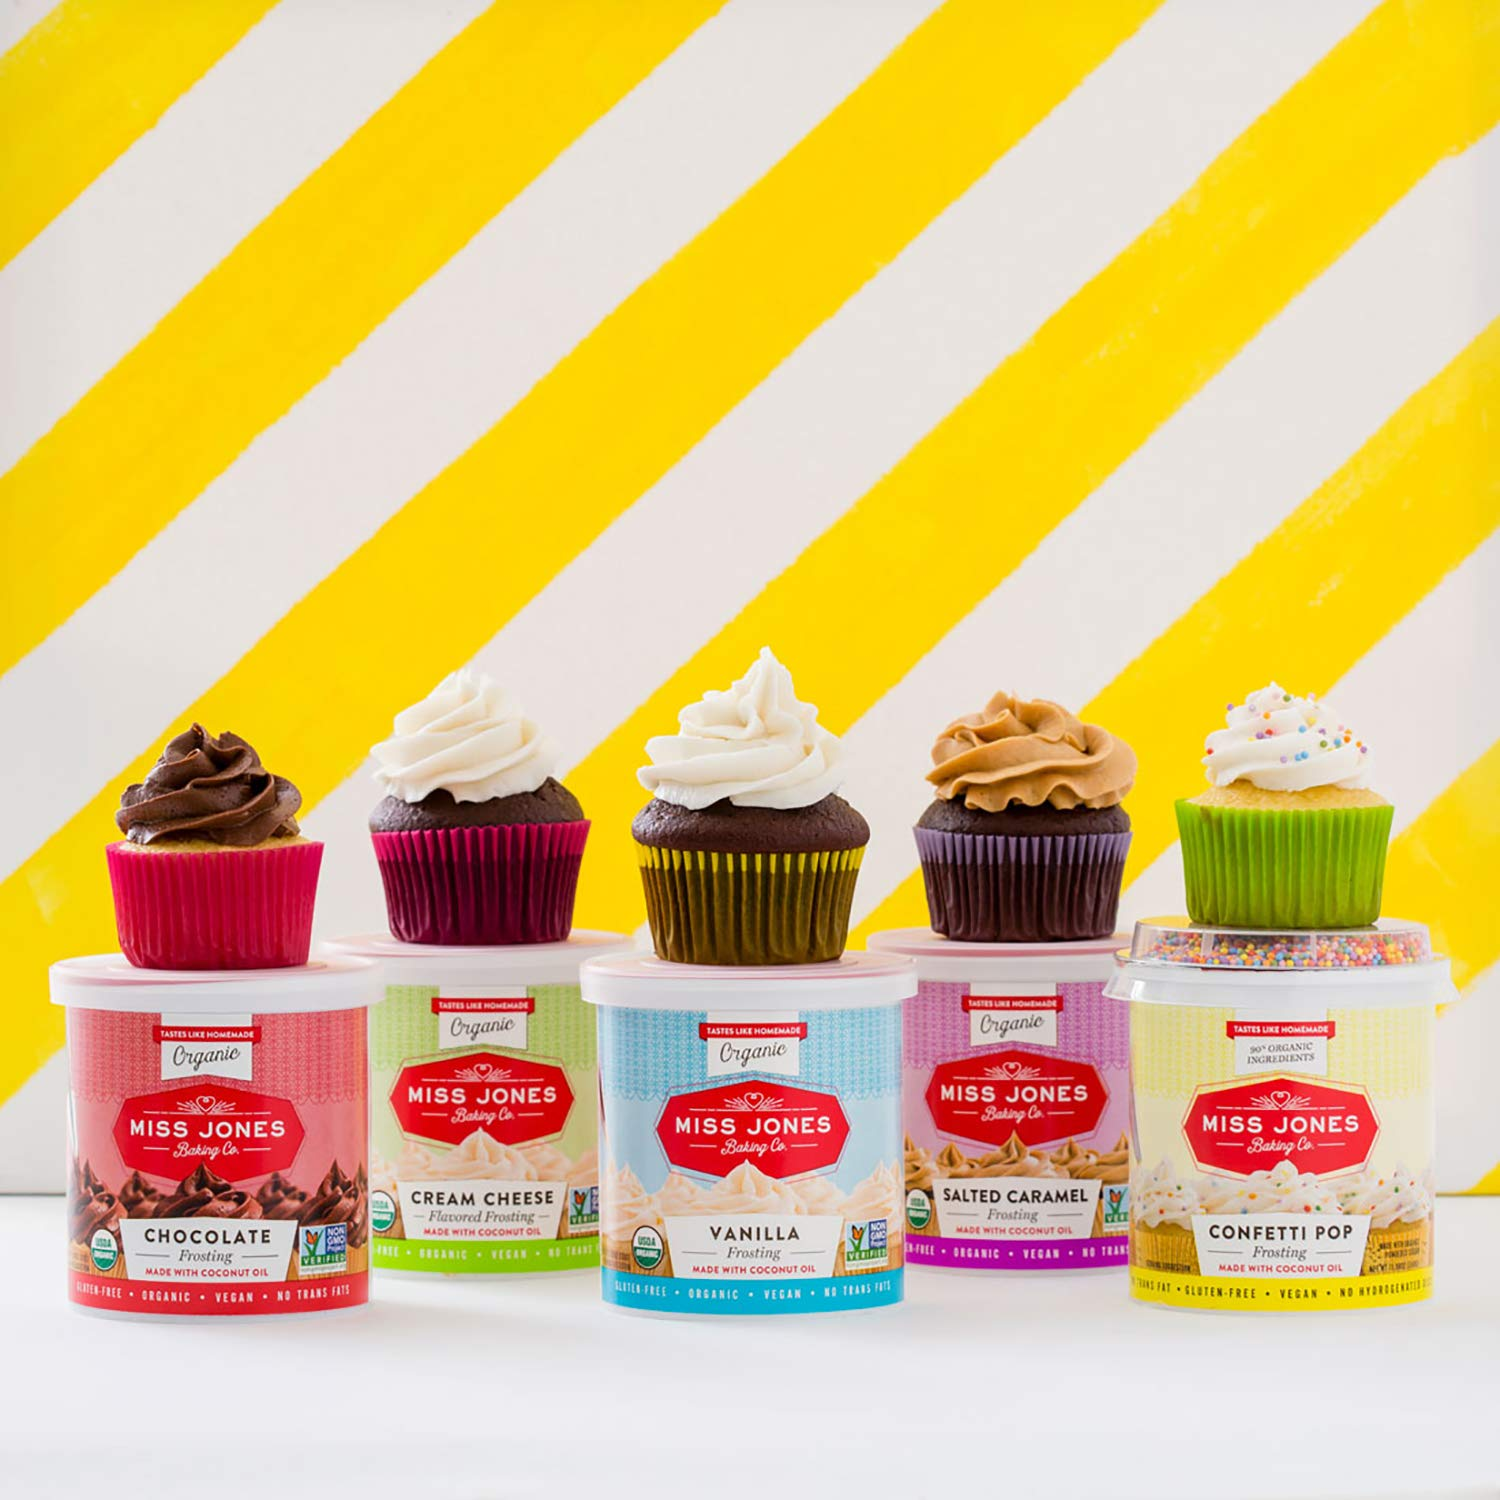 Miss Jones Baking 90% Organic Birthday Buttercream Frosting, Perfect for Icing and Decorating, Vegan-Friendly: Confetti Pop (Pack of 6) by Miss Jones Baking (Image #7)